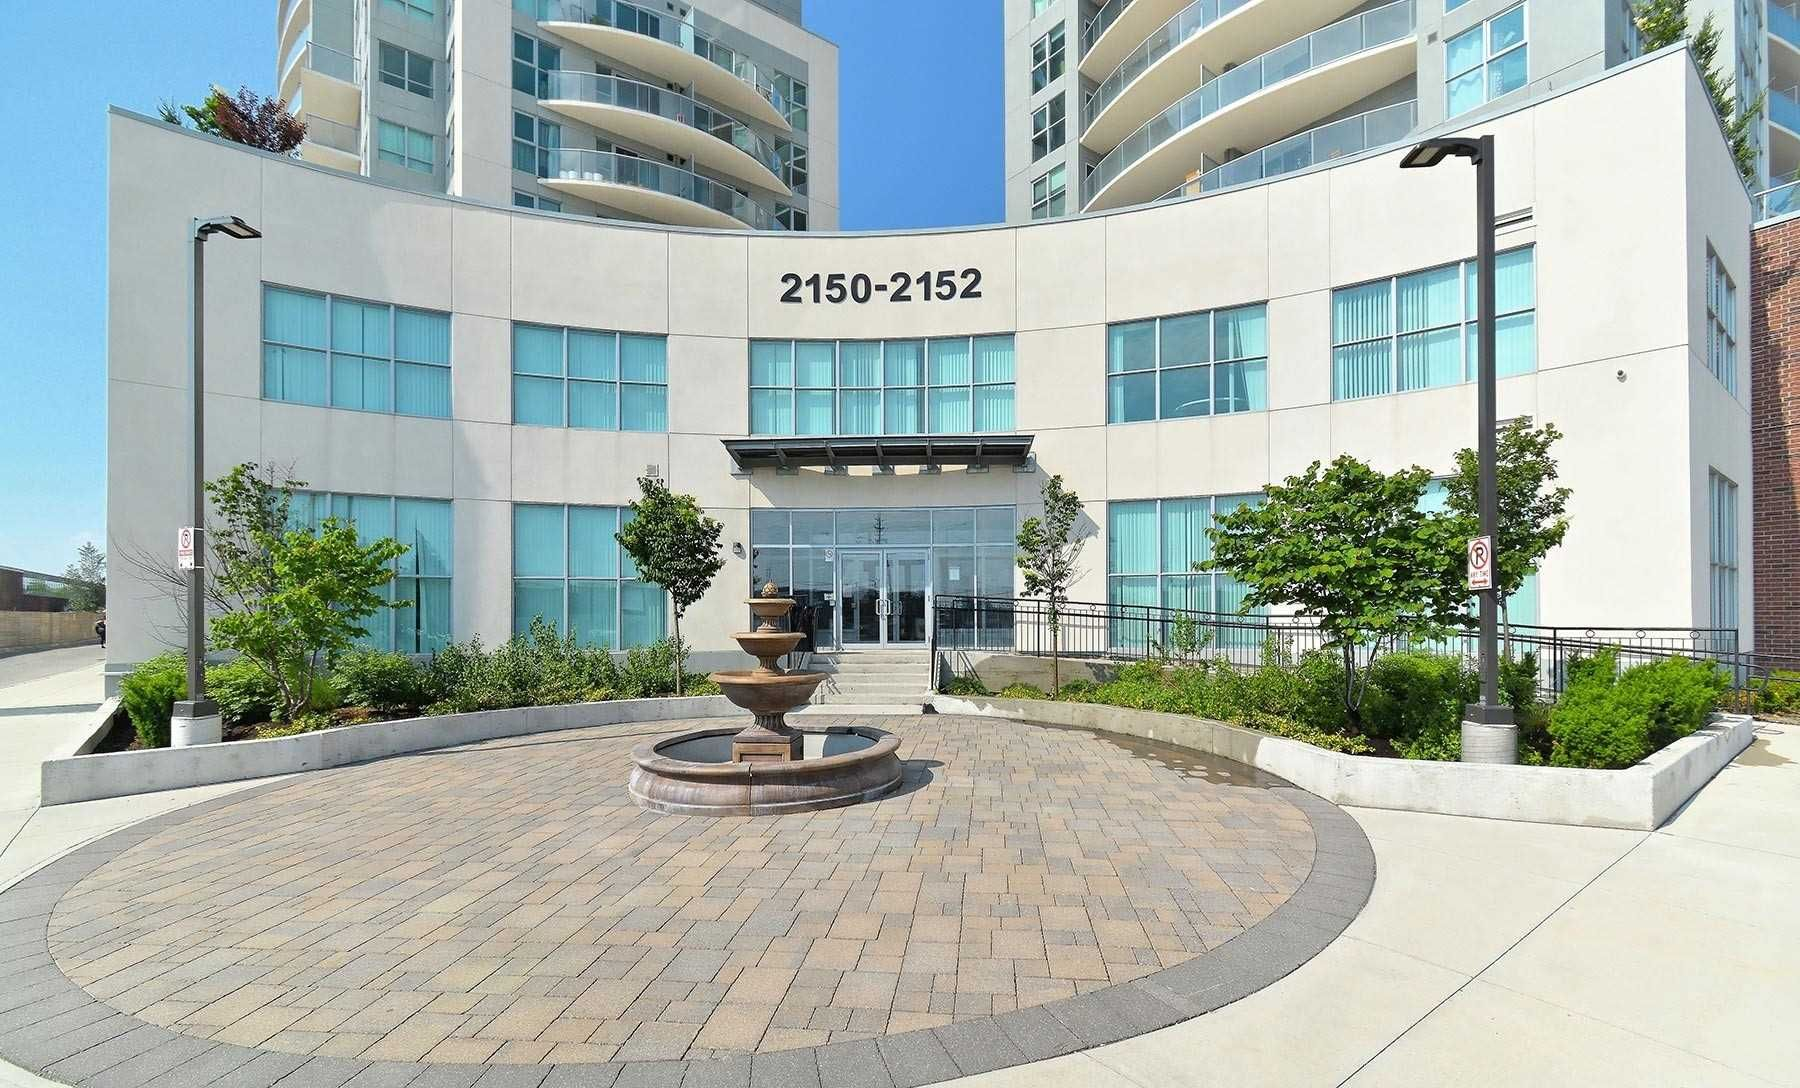 2150 Lawrence Ave E, unit 1807 for sale in Toronto - image #2